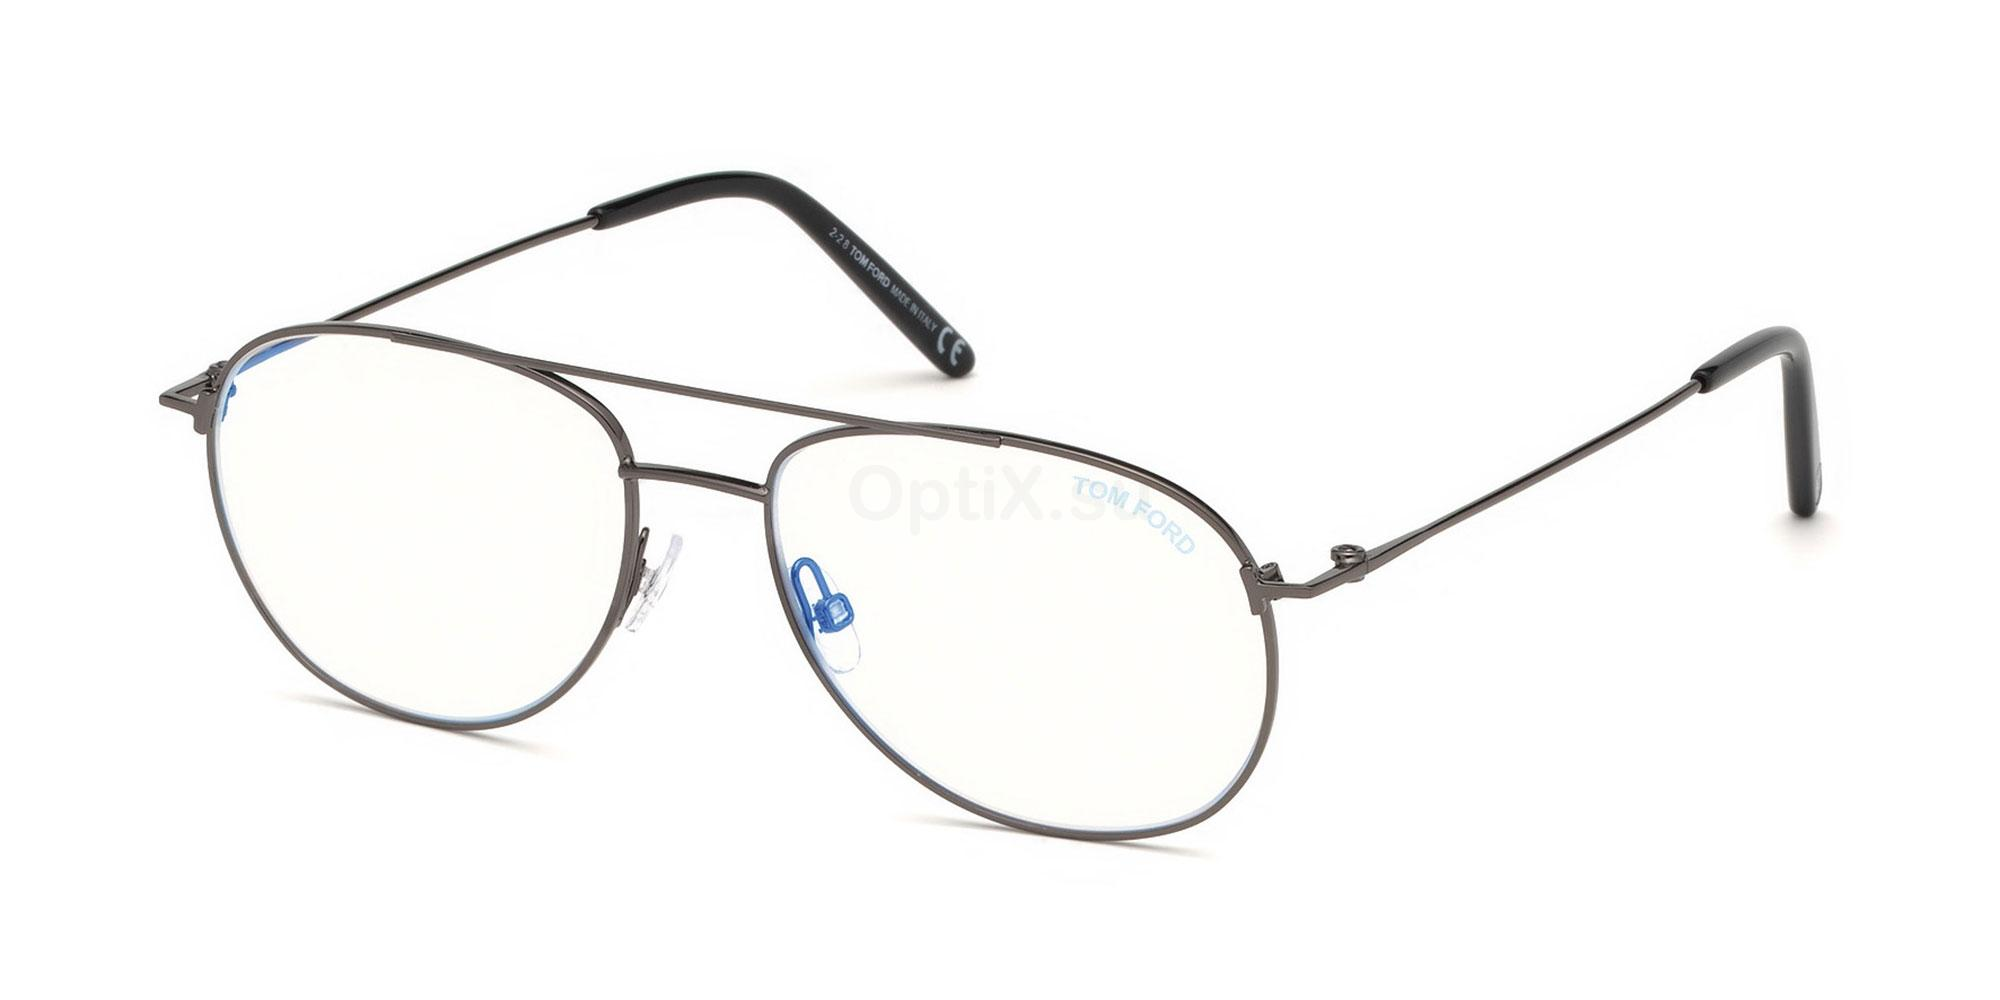 012 FT5581-B Glasses, Tom Ford